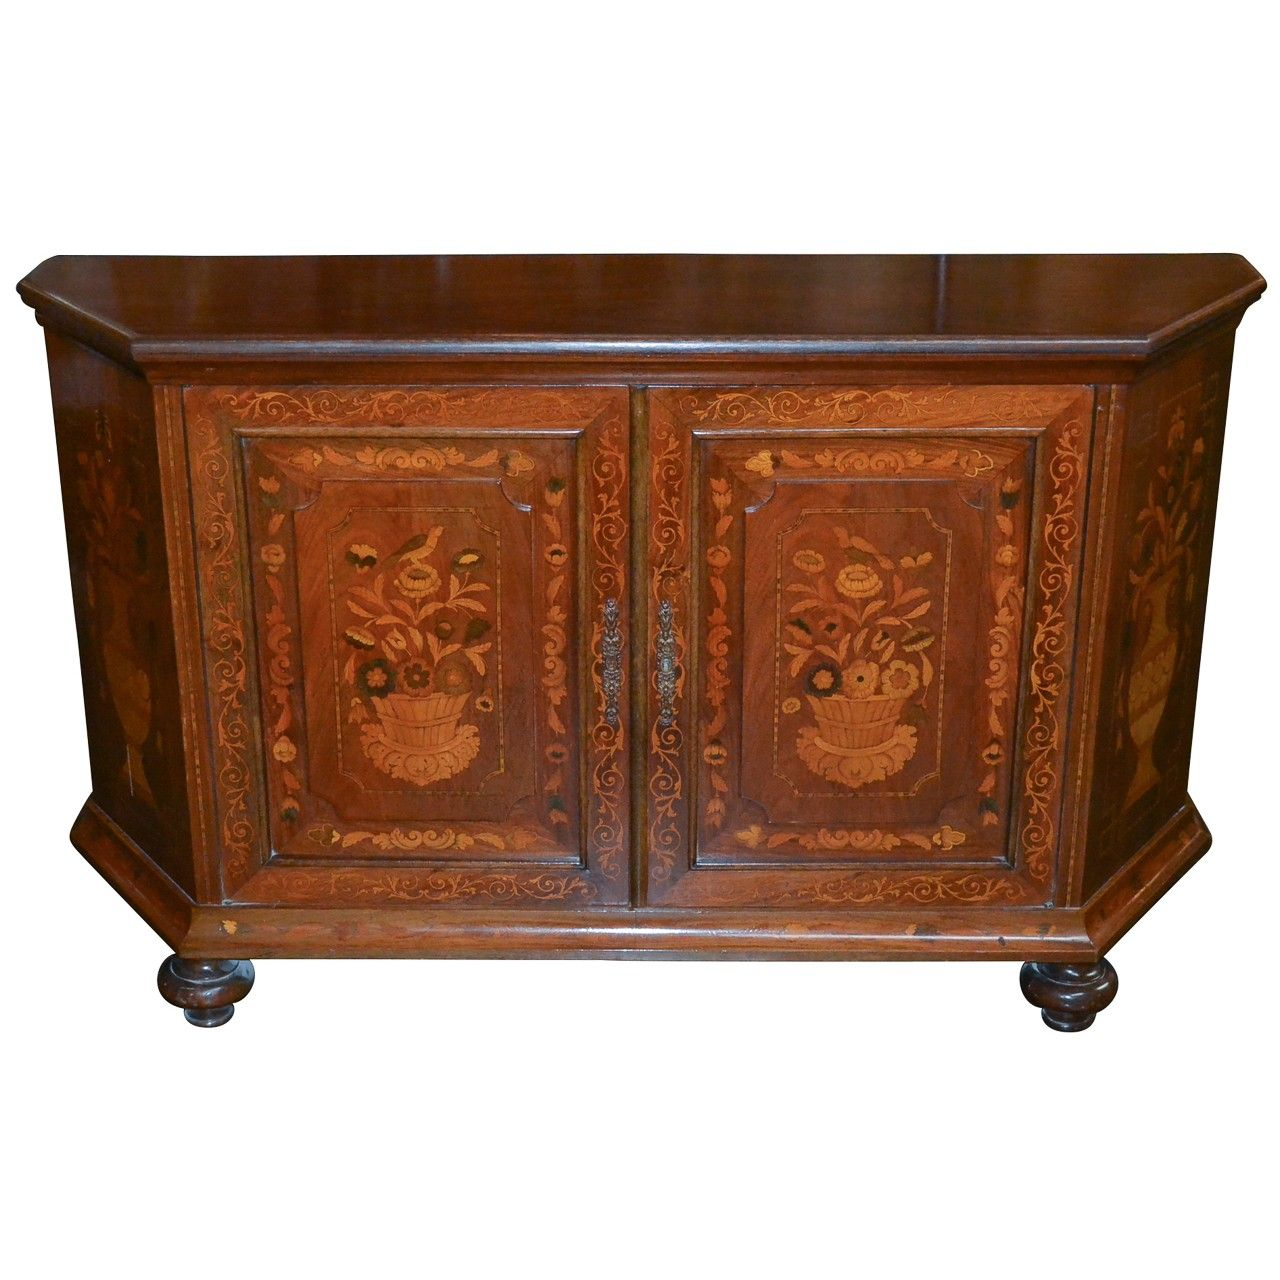 Merveilleux Italian Marquetry Inlaid Credenza   Antique Buffets, Sideboards   Antique  Furniture   Legacy Antiques